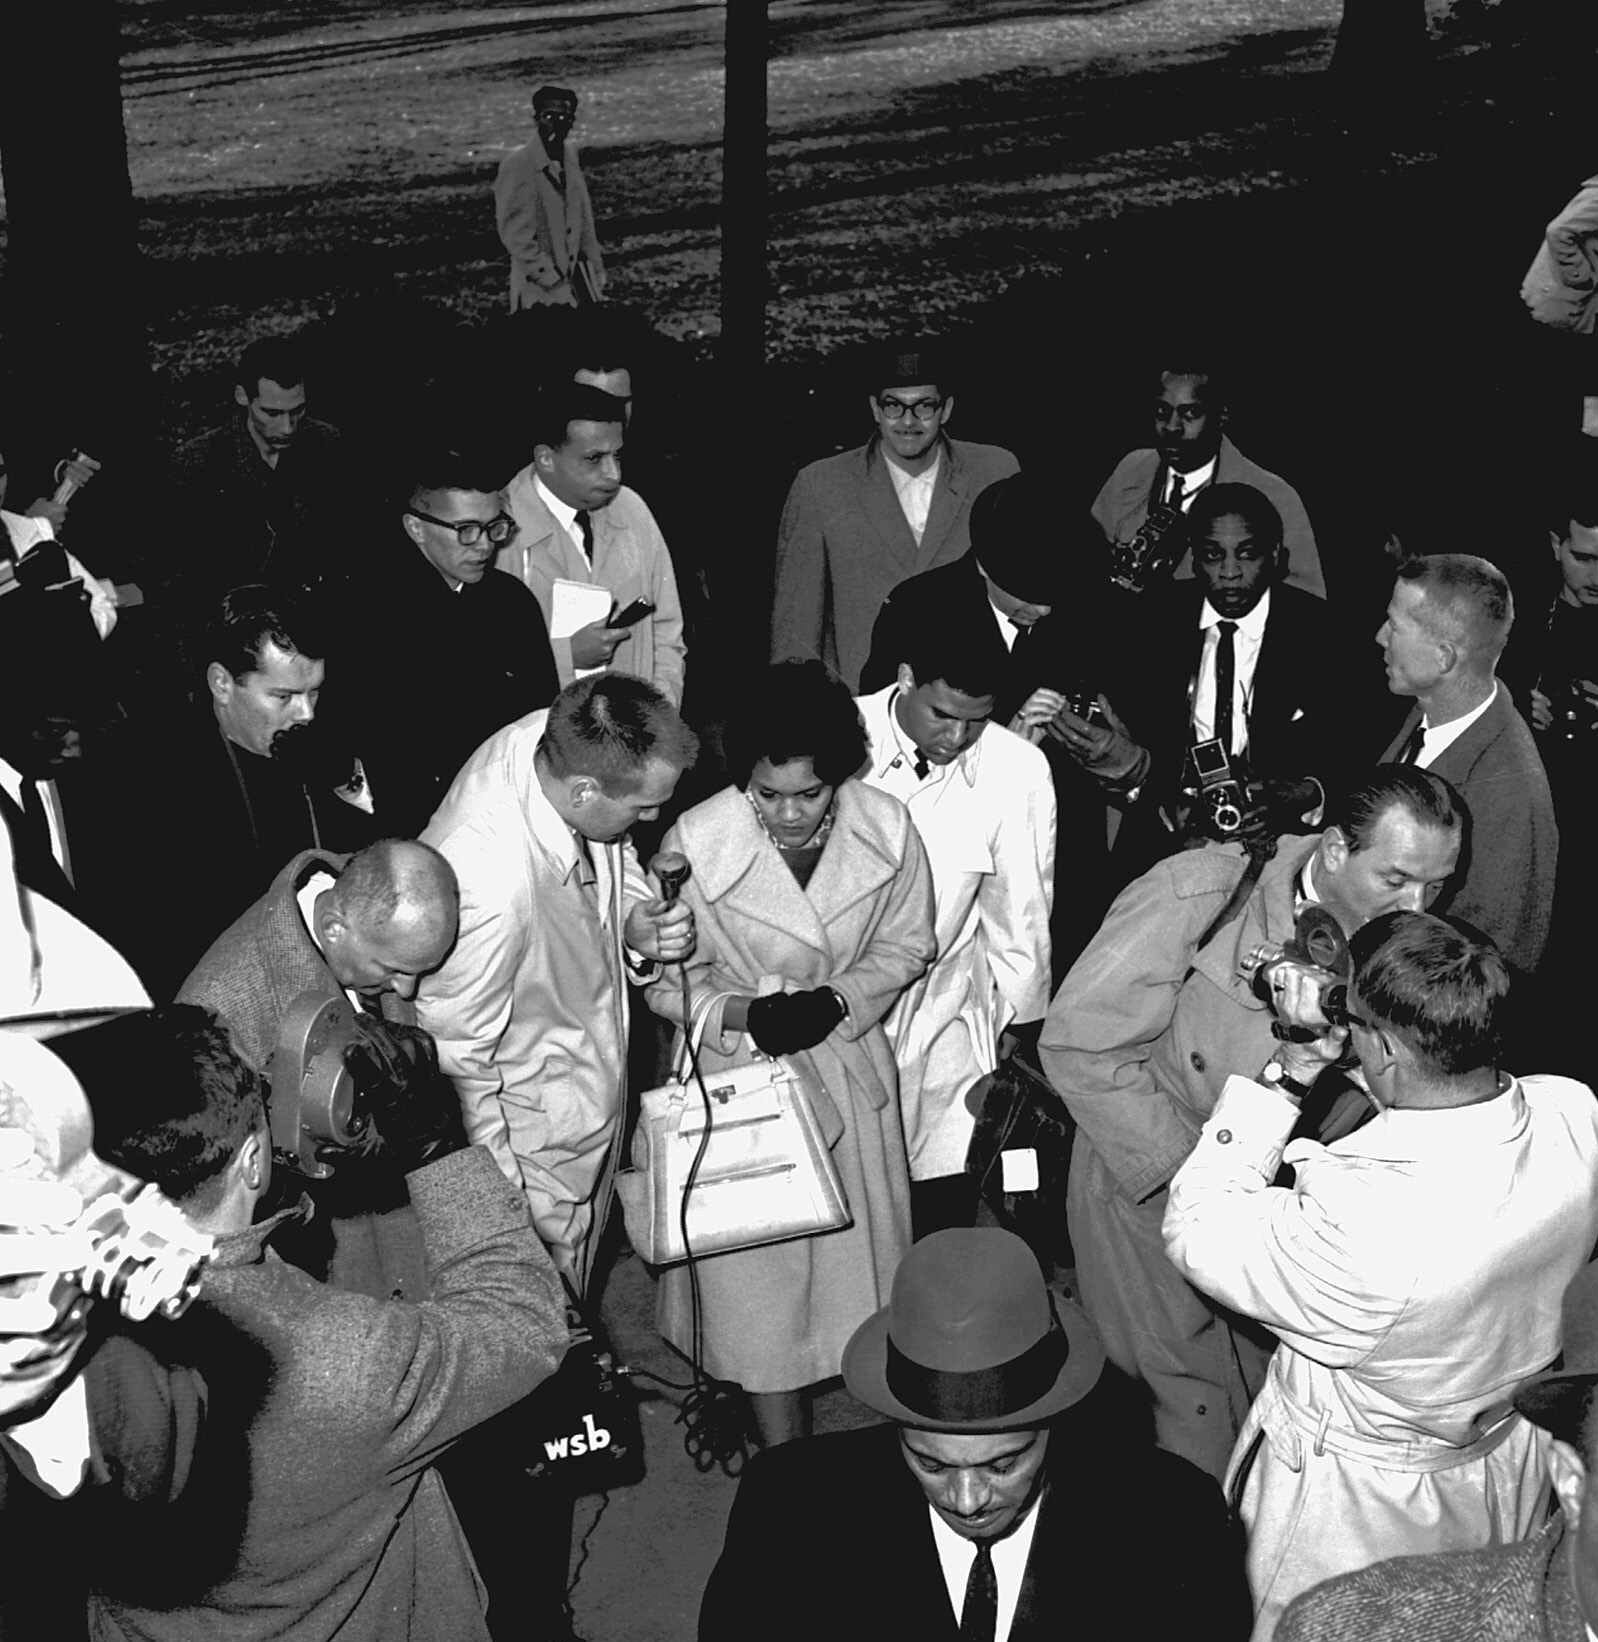 Charlayne Hunter, 18, and Hamilton Holmes, 19, center, have both been admitted to the University of Georgia under federal court order, are surrounded by newsmen as they arrive on the university campus in Athens, Ga., on Jan. 9, 1961.